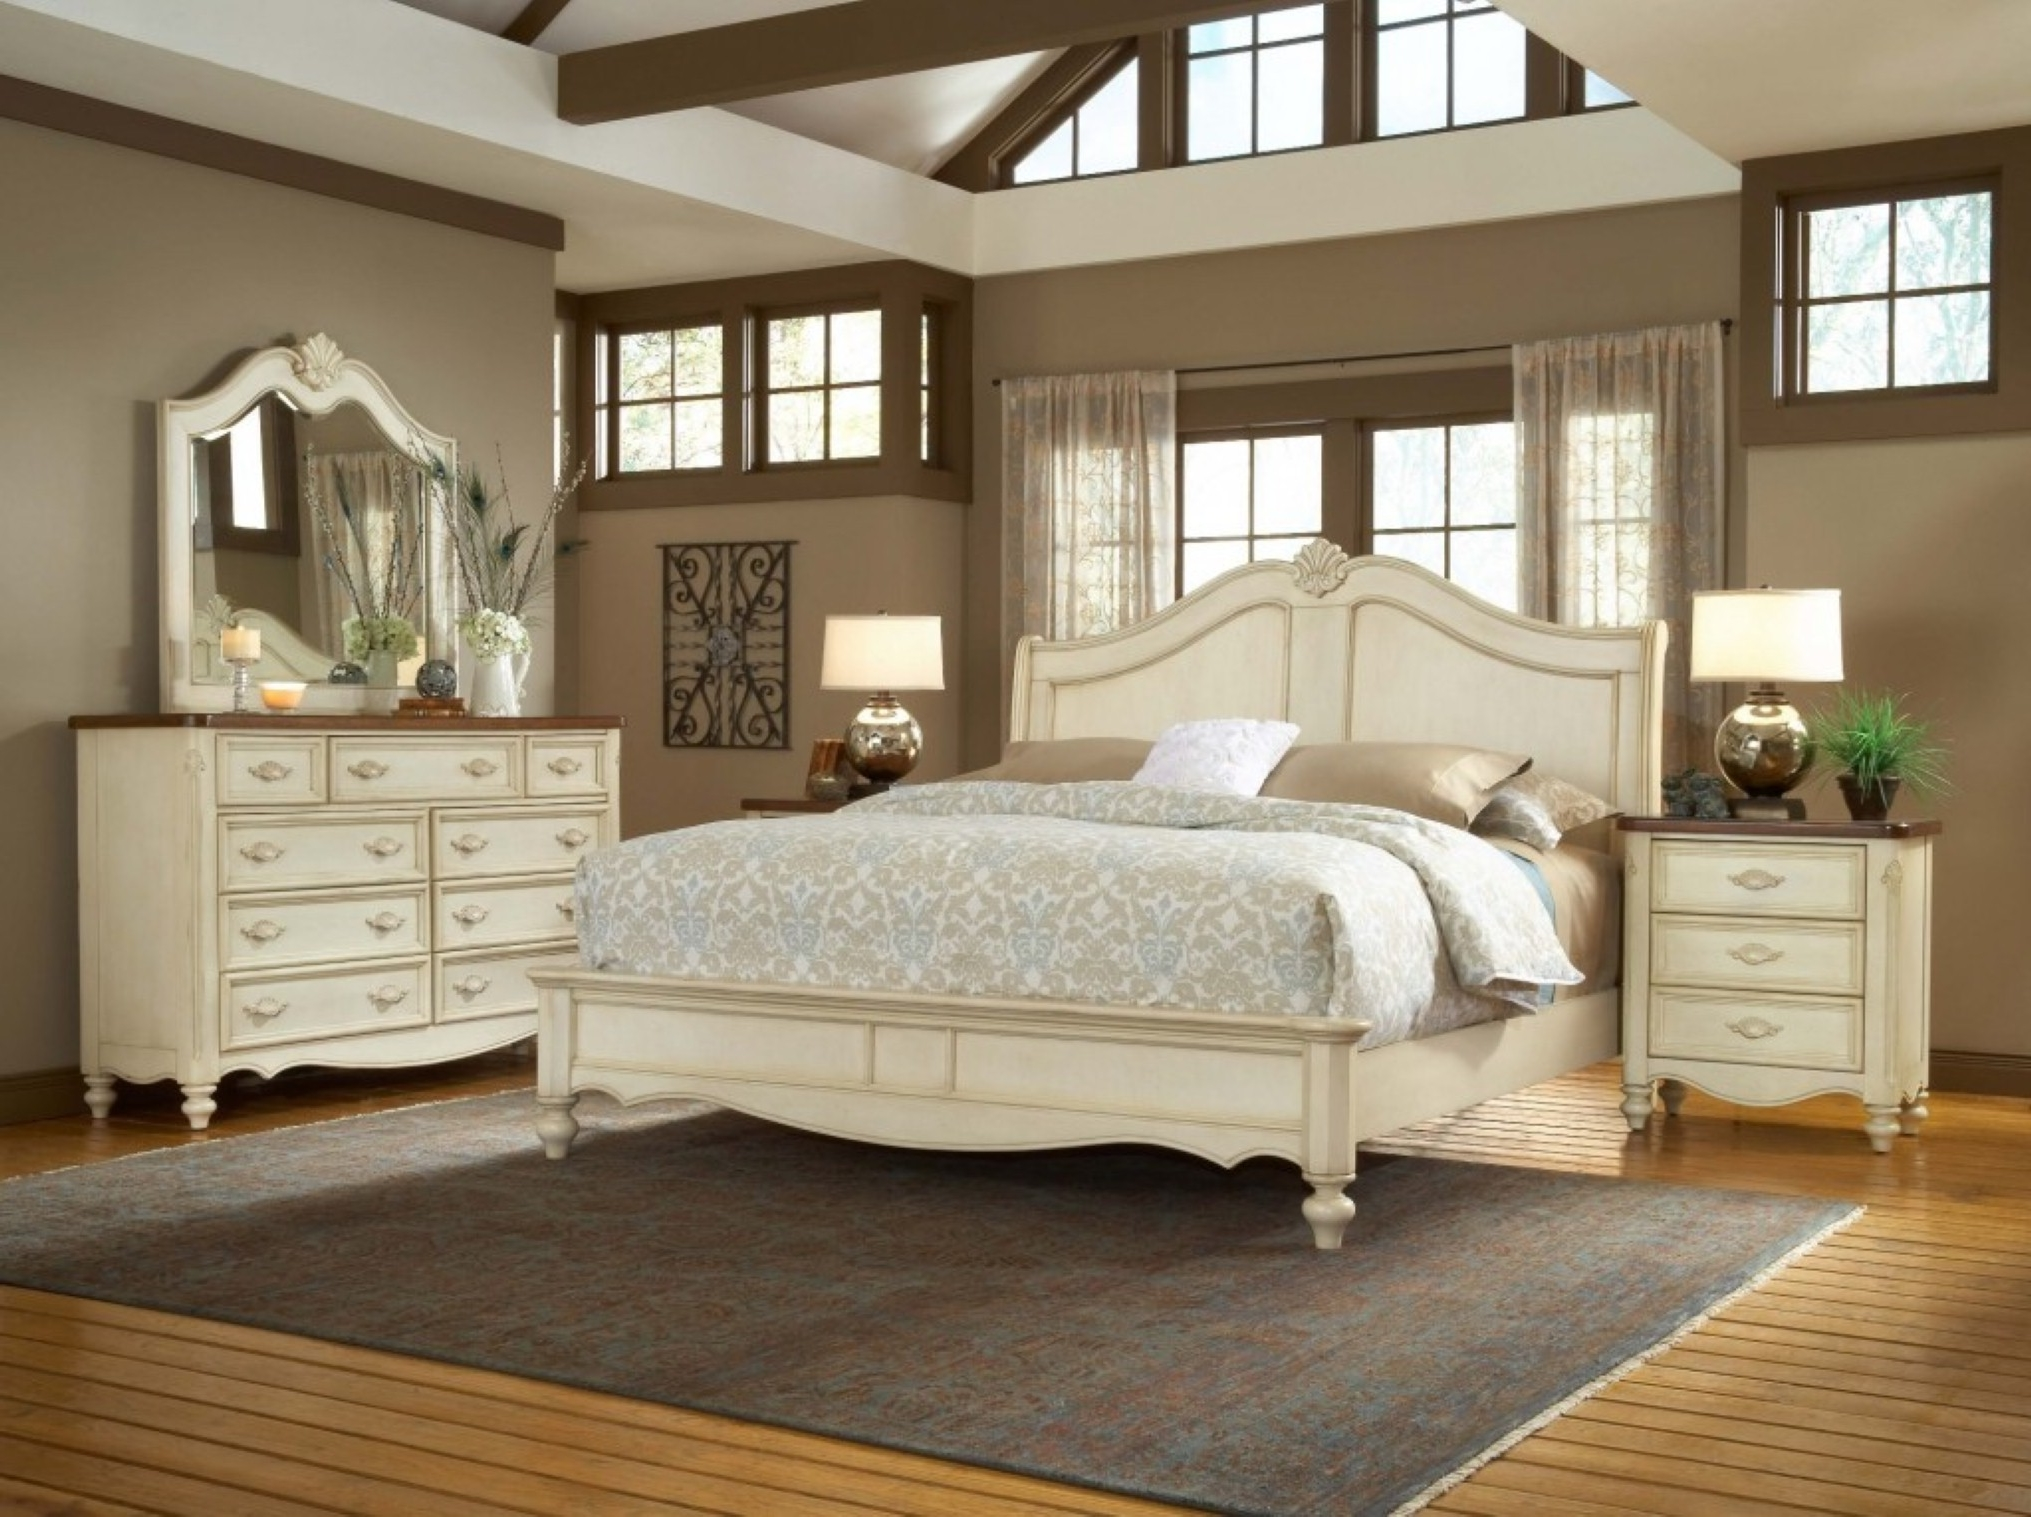 Neat Inspirational Cream Furniture As Cream Painted Bedroom Furniture With Added Design Bedroom And Exquisite To Various Settings Layout Of The Room Bedroom Exquisite (Image 7 of 21)